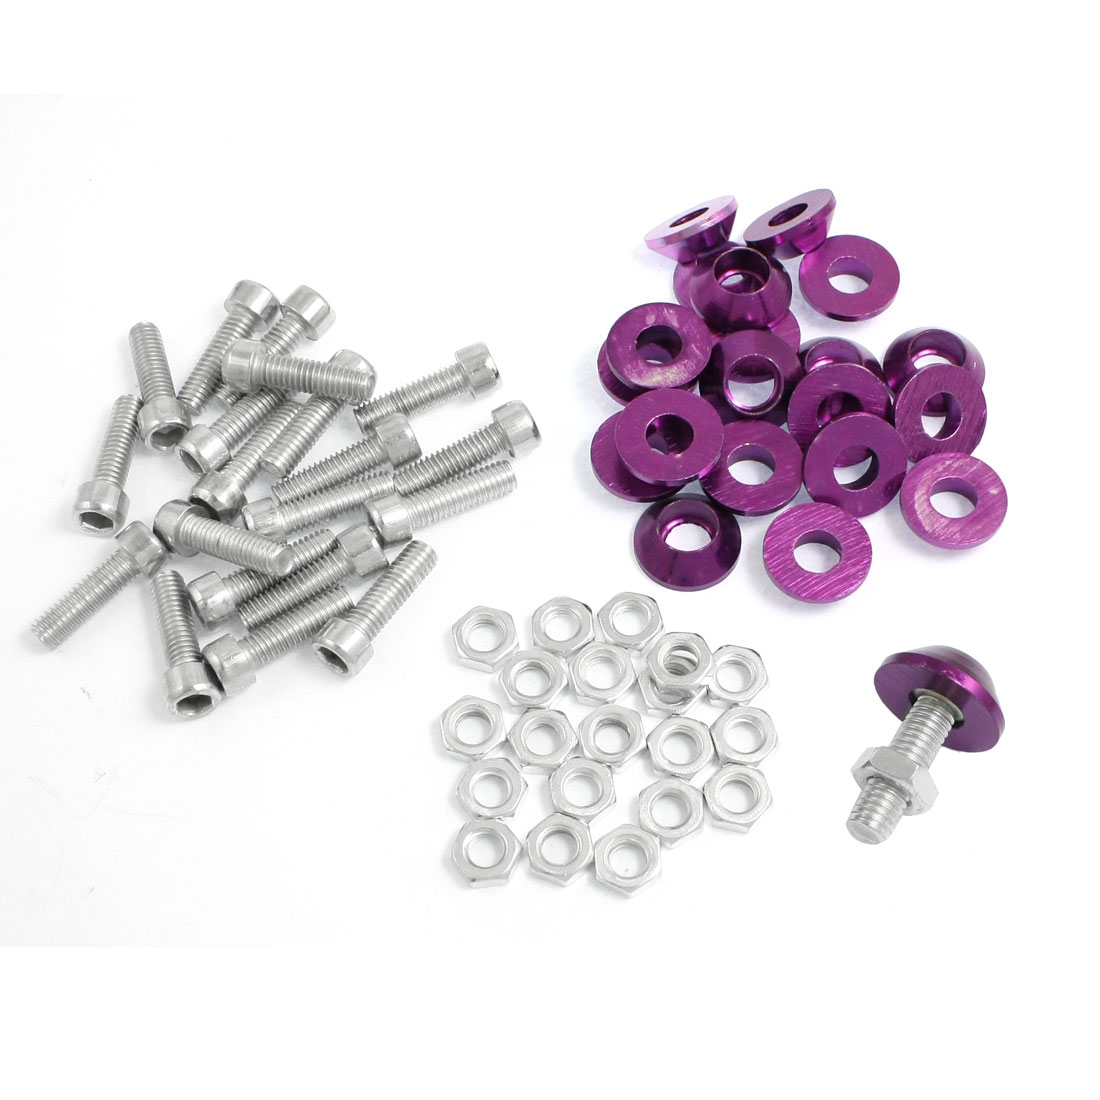 20 Pcs Silver Tone Purple Alloy Car License Plate Bolt Screw